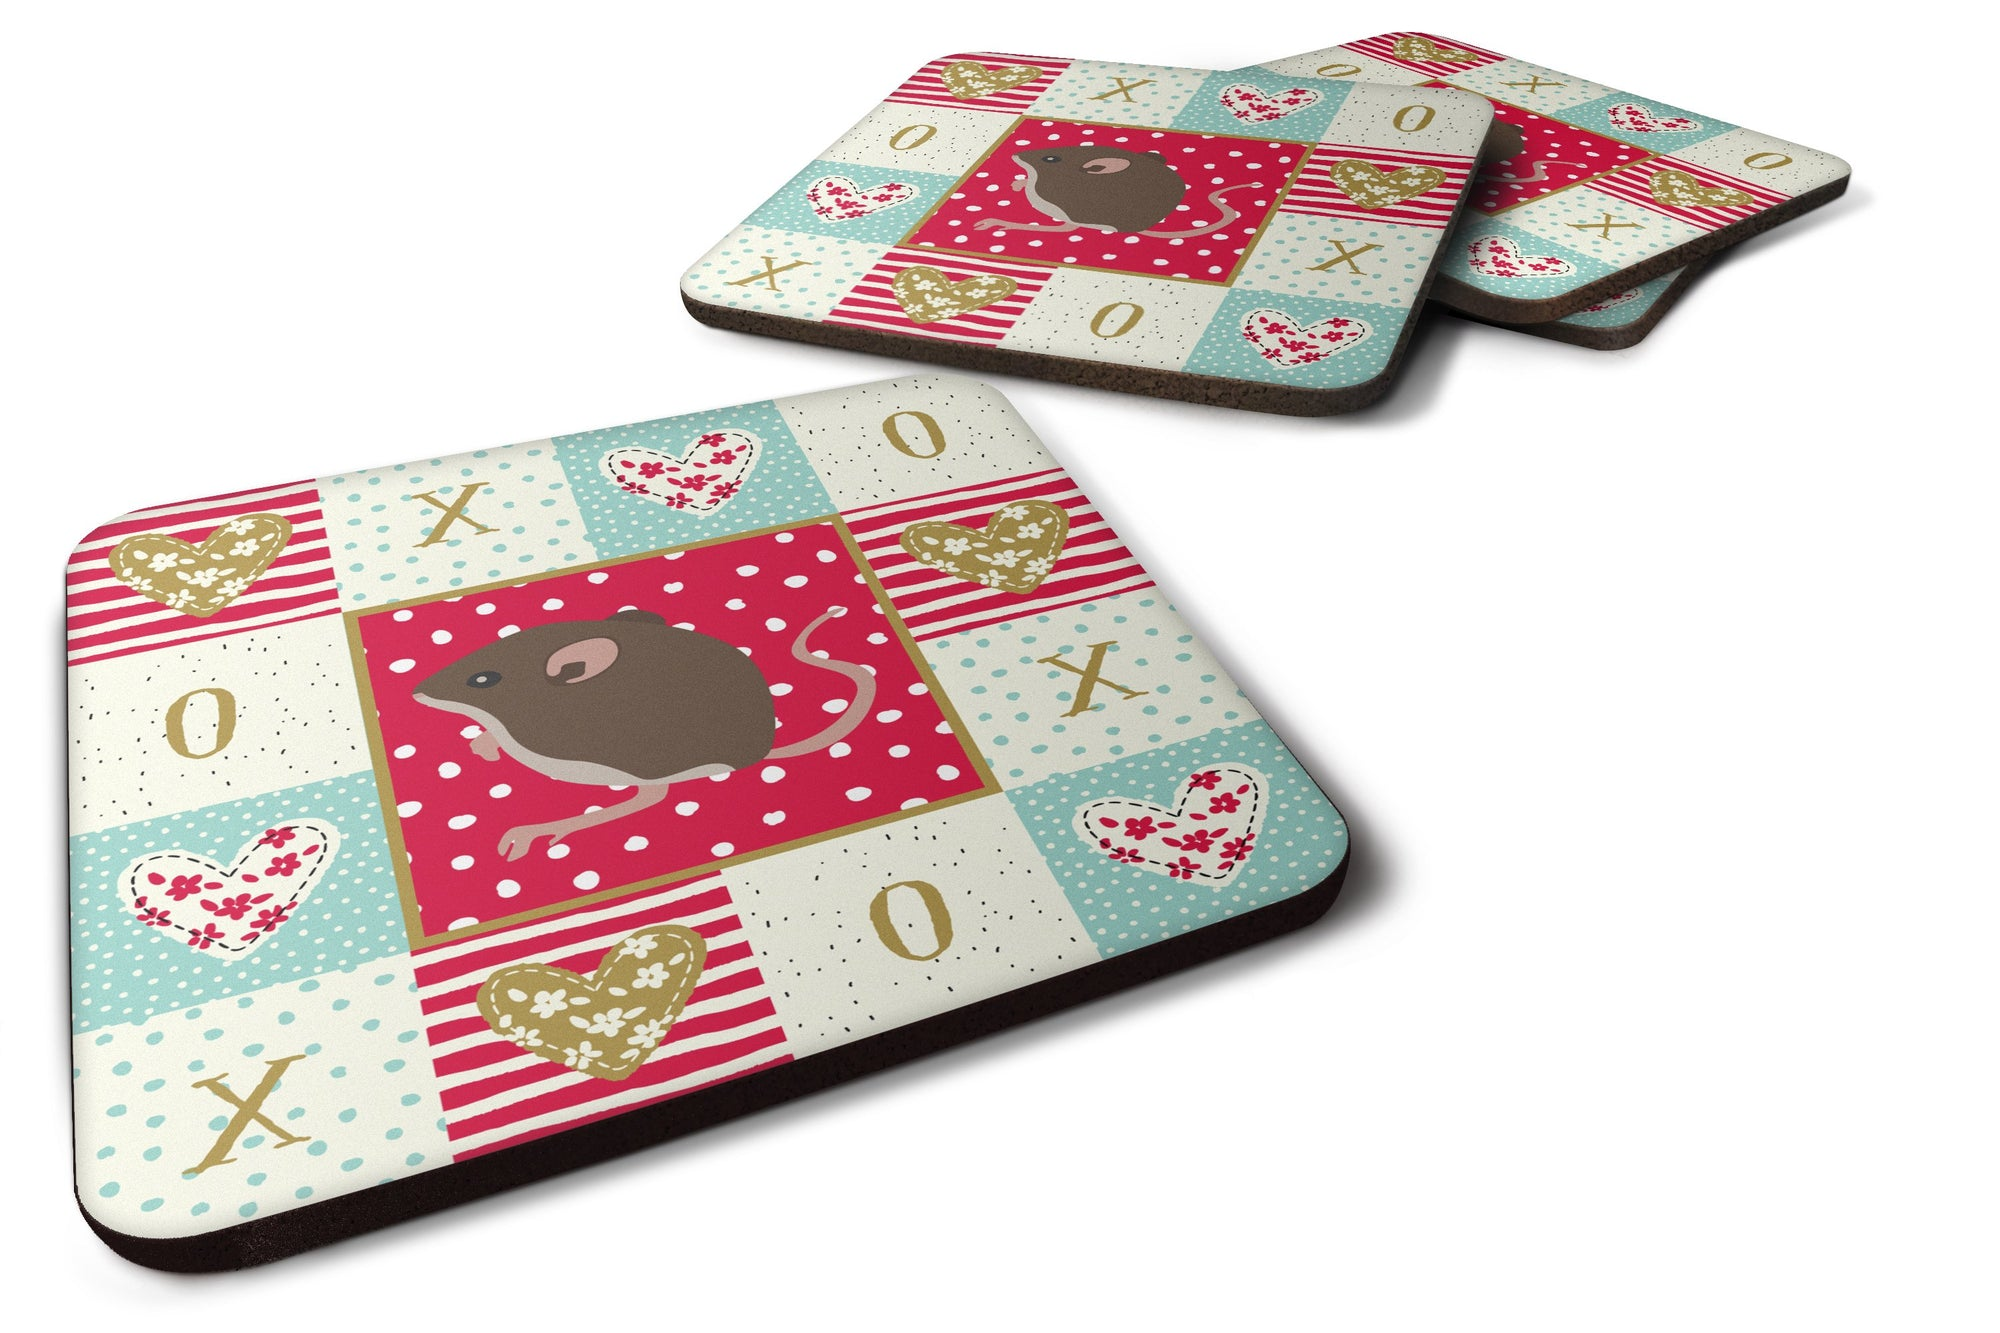 Set of 4 Baby Mouse Love Foam Coasters Set of 4 CK5448FC by Caroline's Treasures